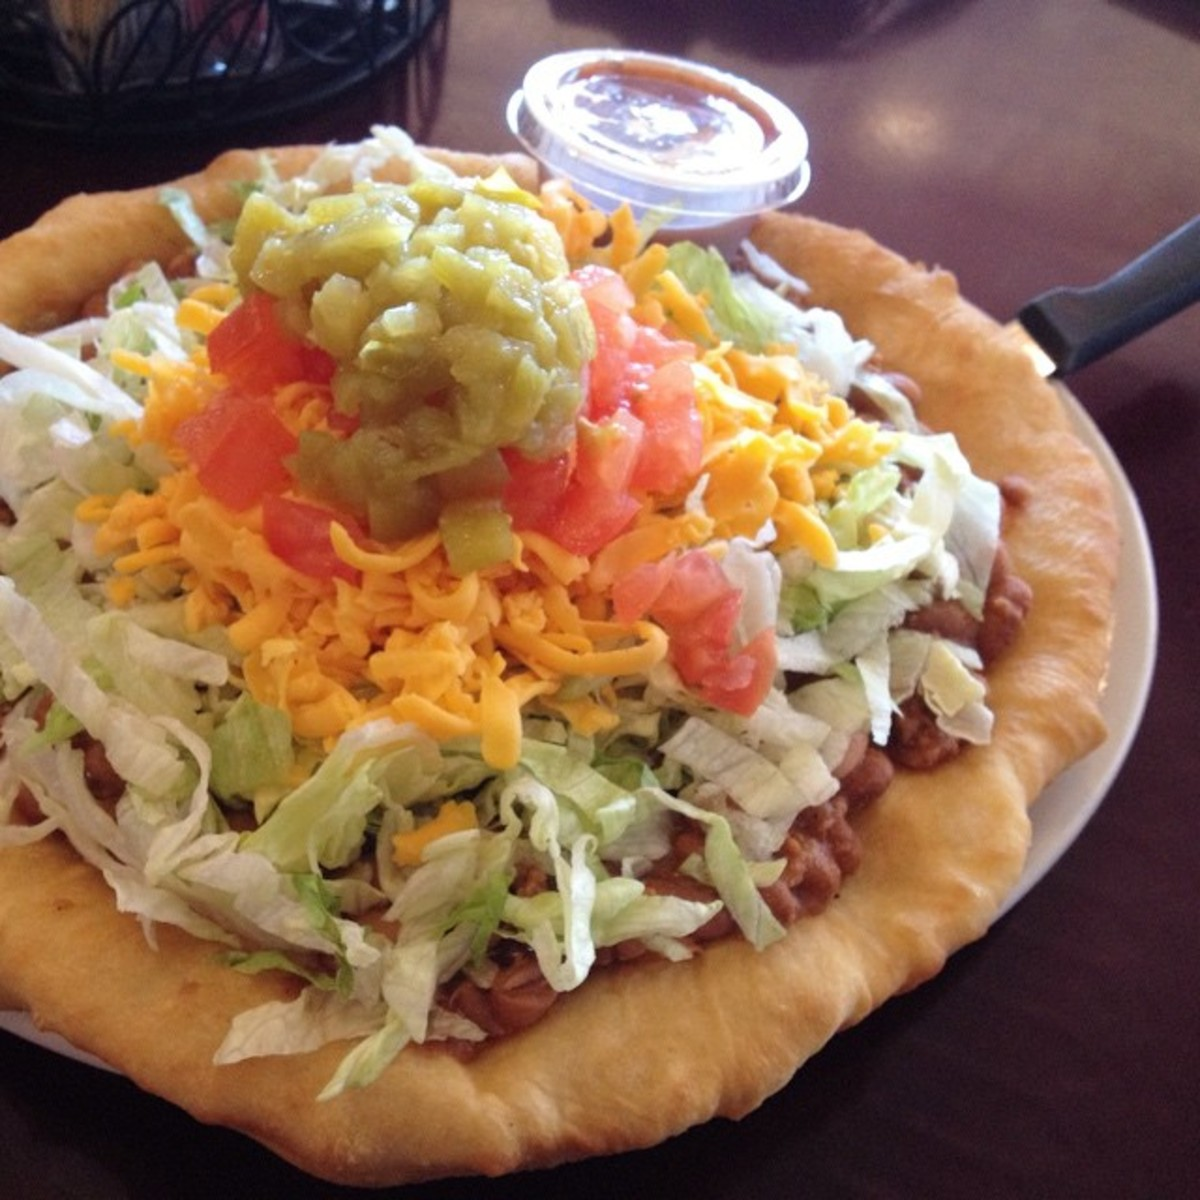 'I ordered this Navajo style taco, which is fry bread topped with a mountain of taco fillings'